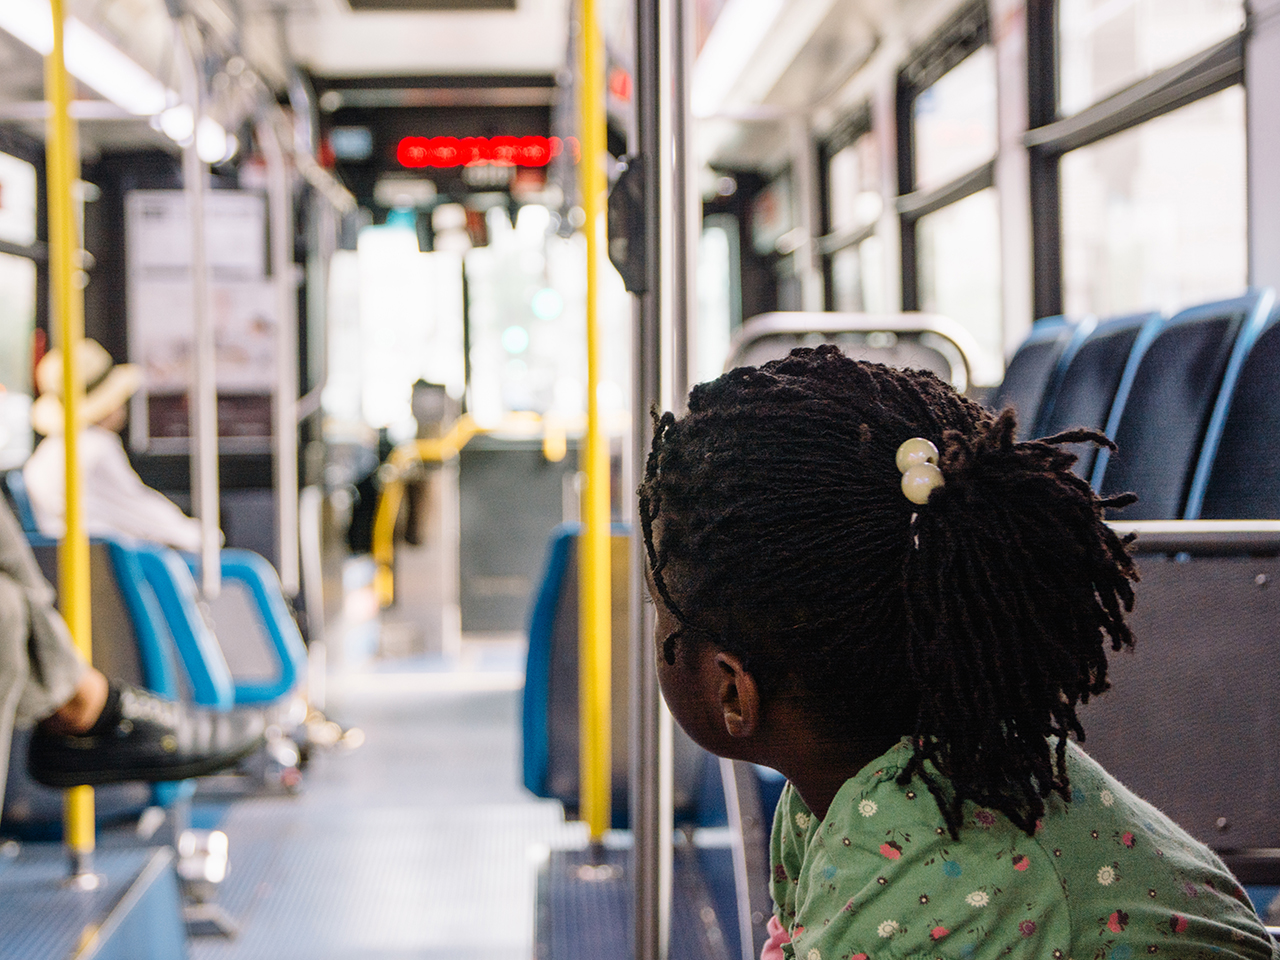 African American girl inside a bus in a city.